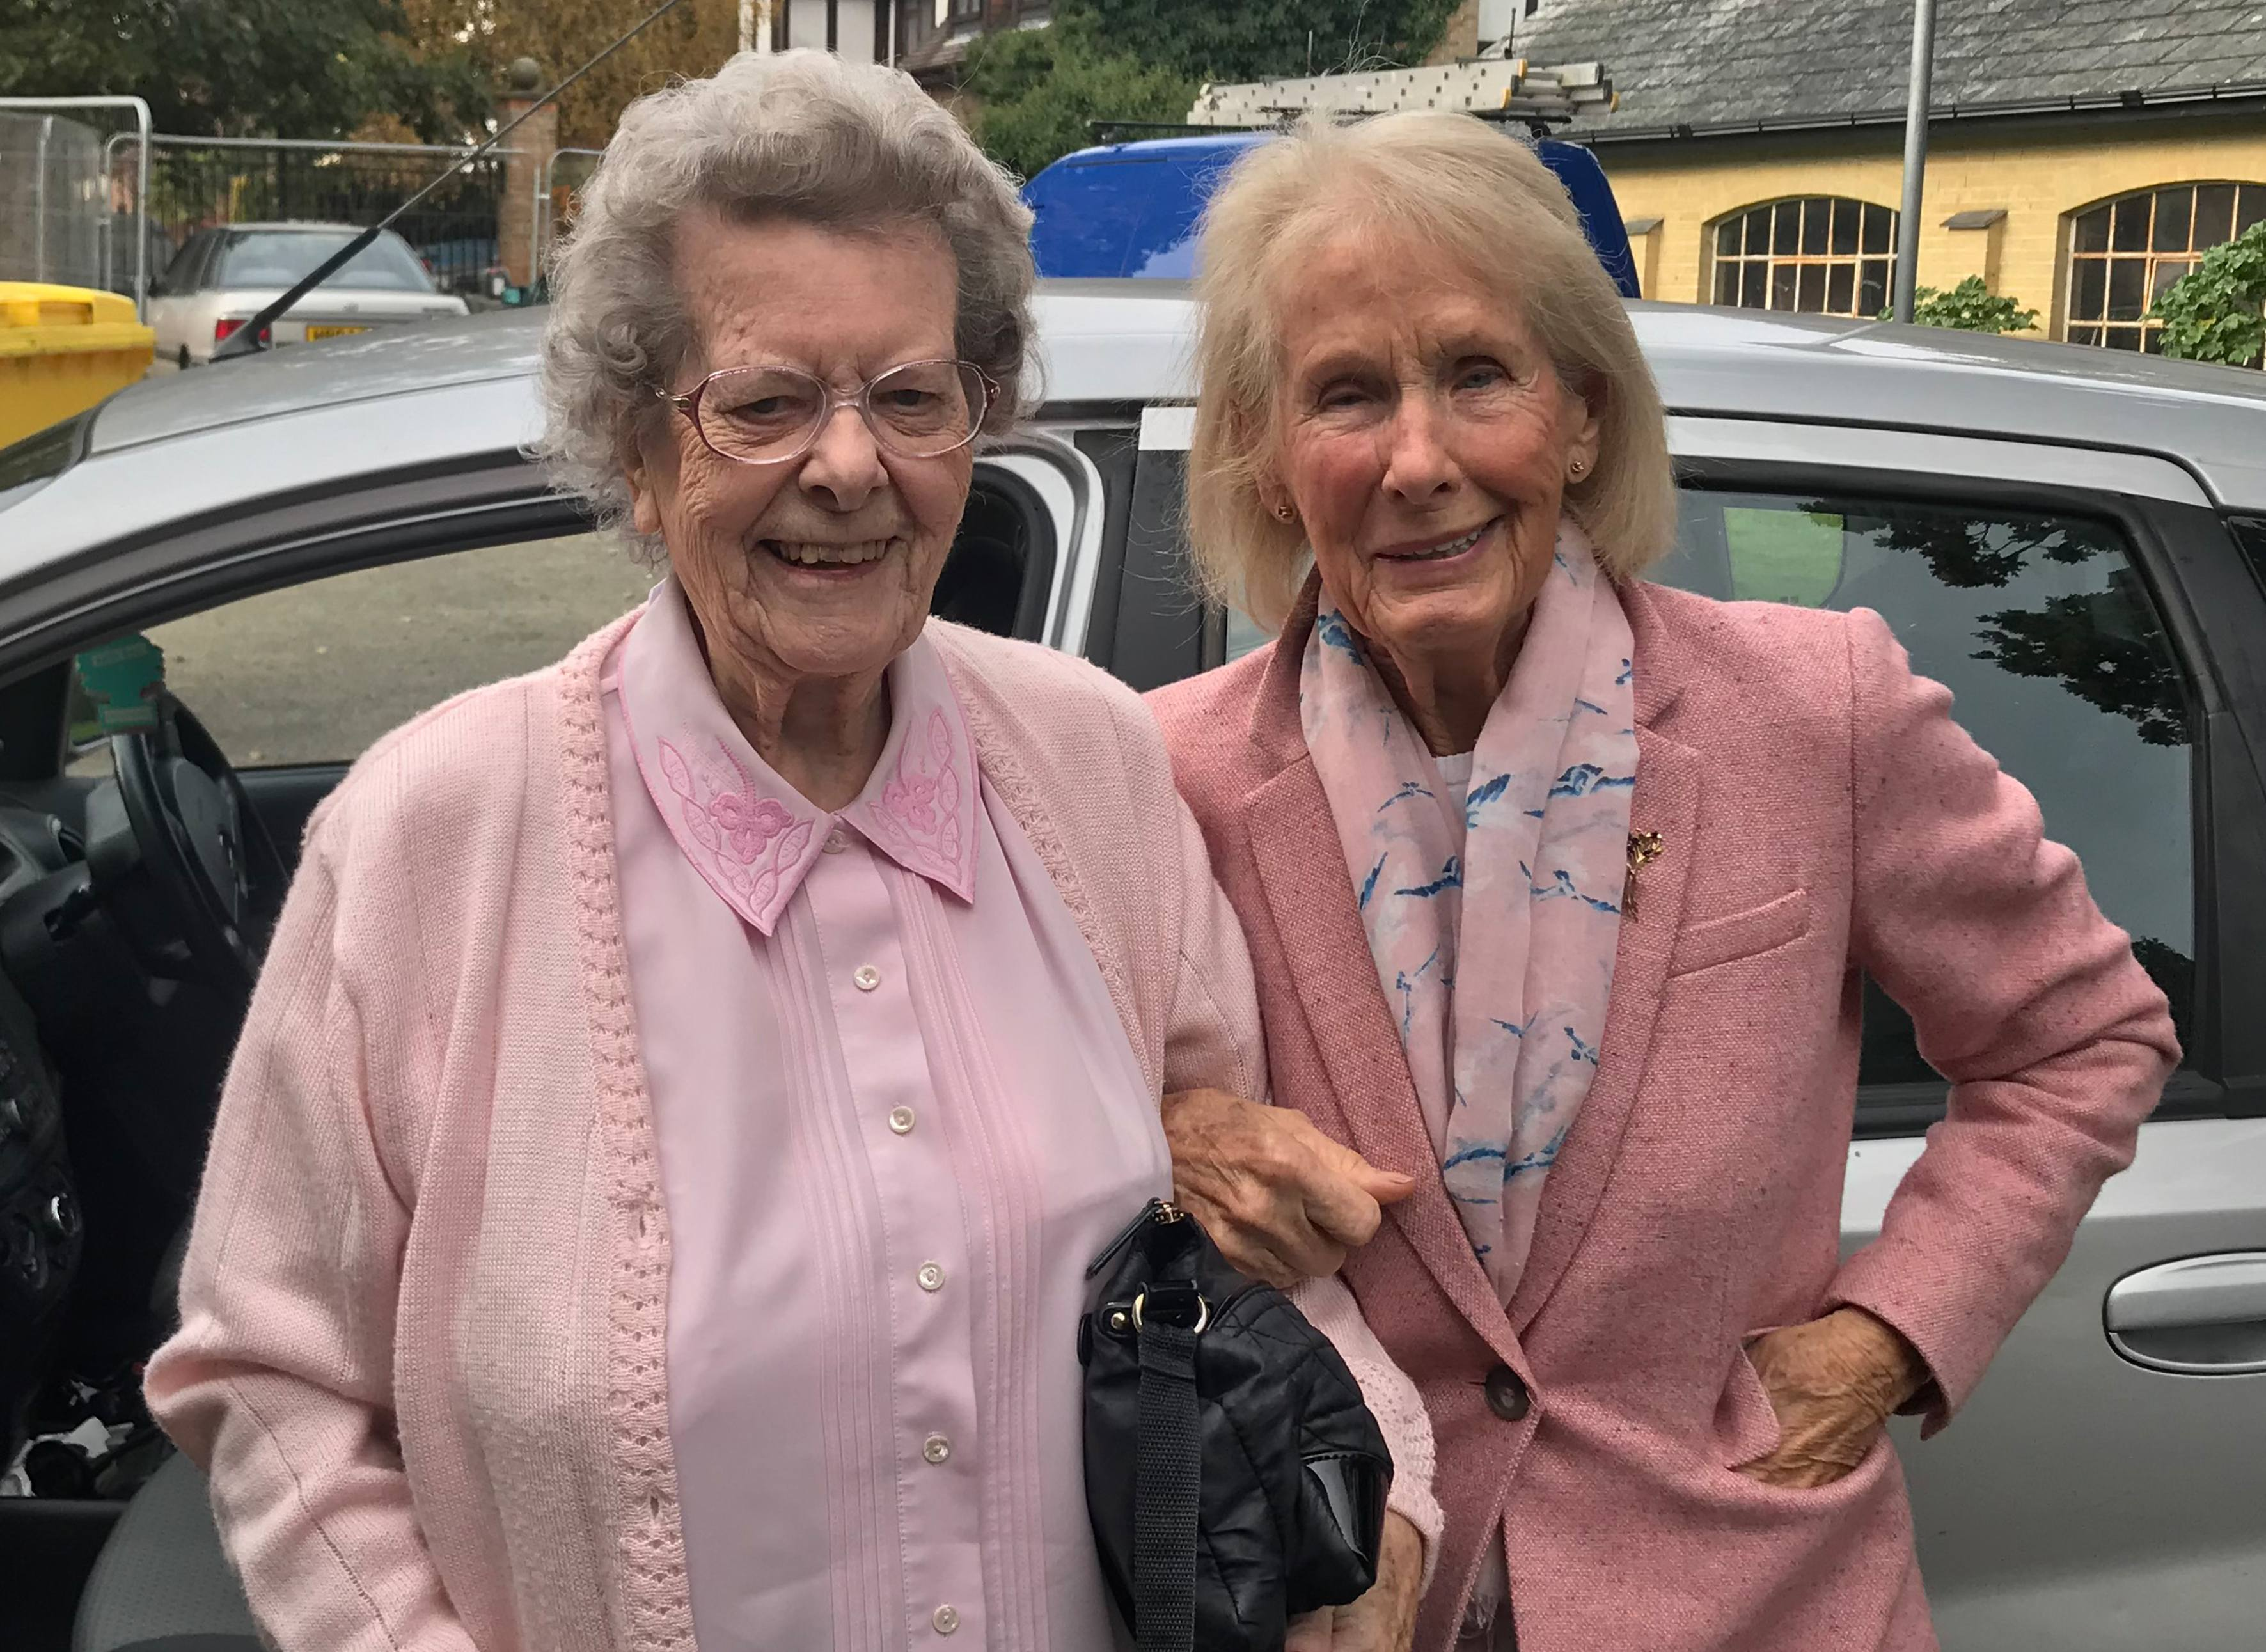 Blackbrook House resident Gwen with Pam